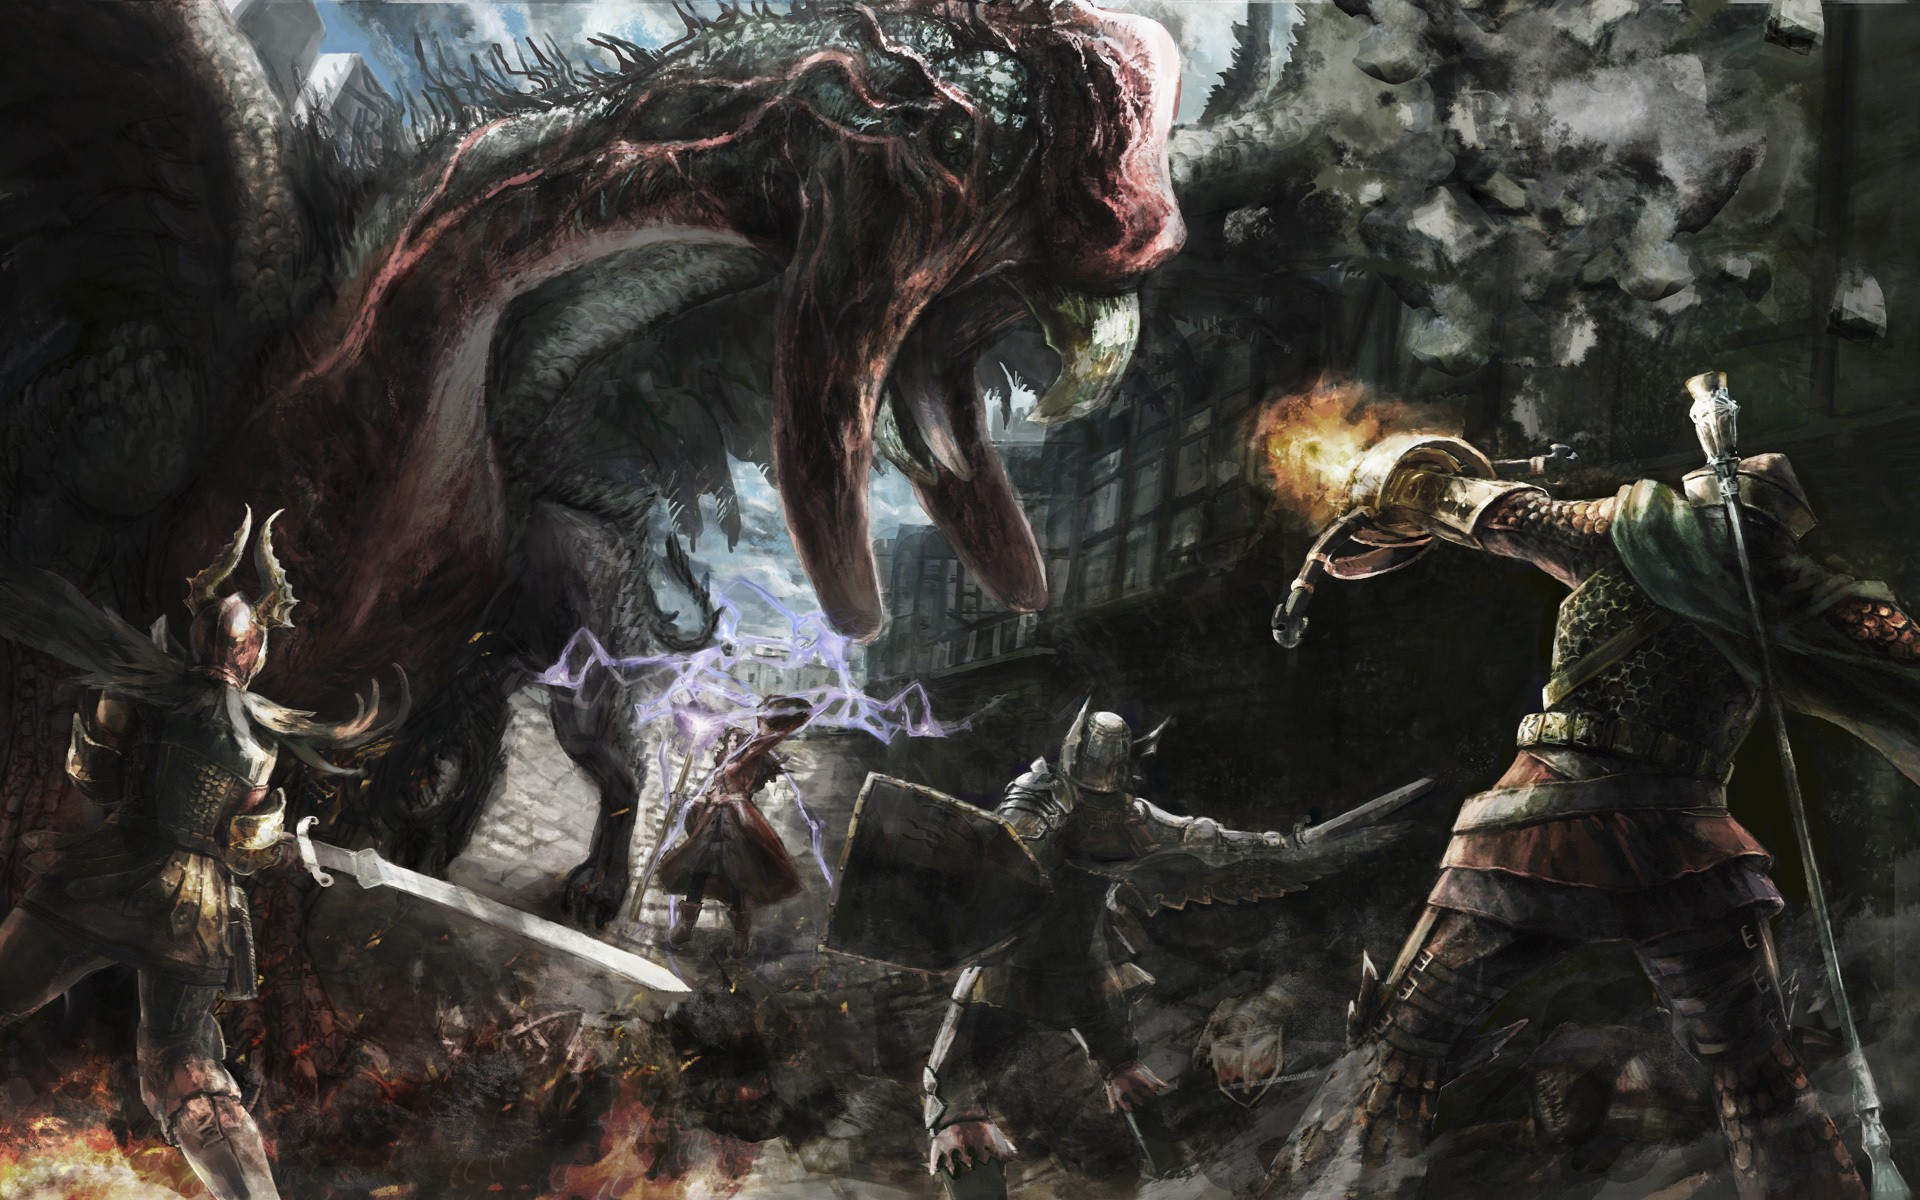 medieval dragons dogma wallpaper 1920x1200 11784 WallpaperUP 1920x1200